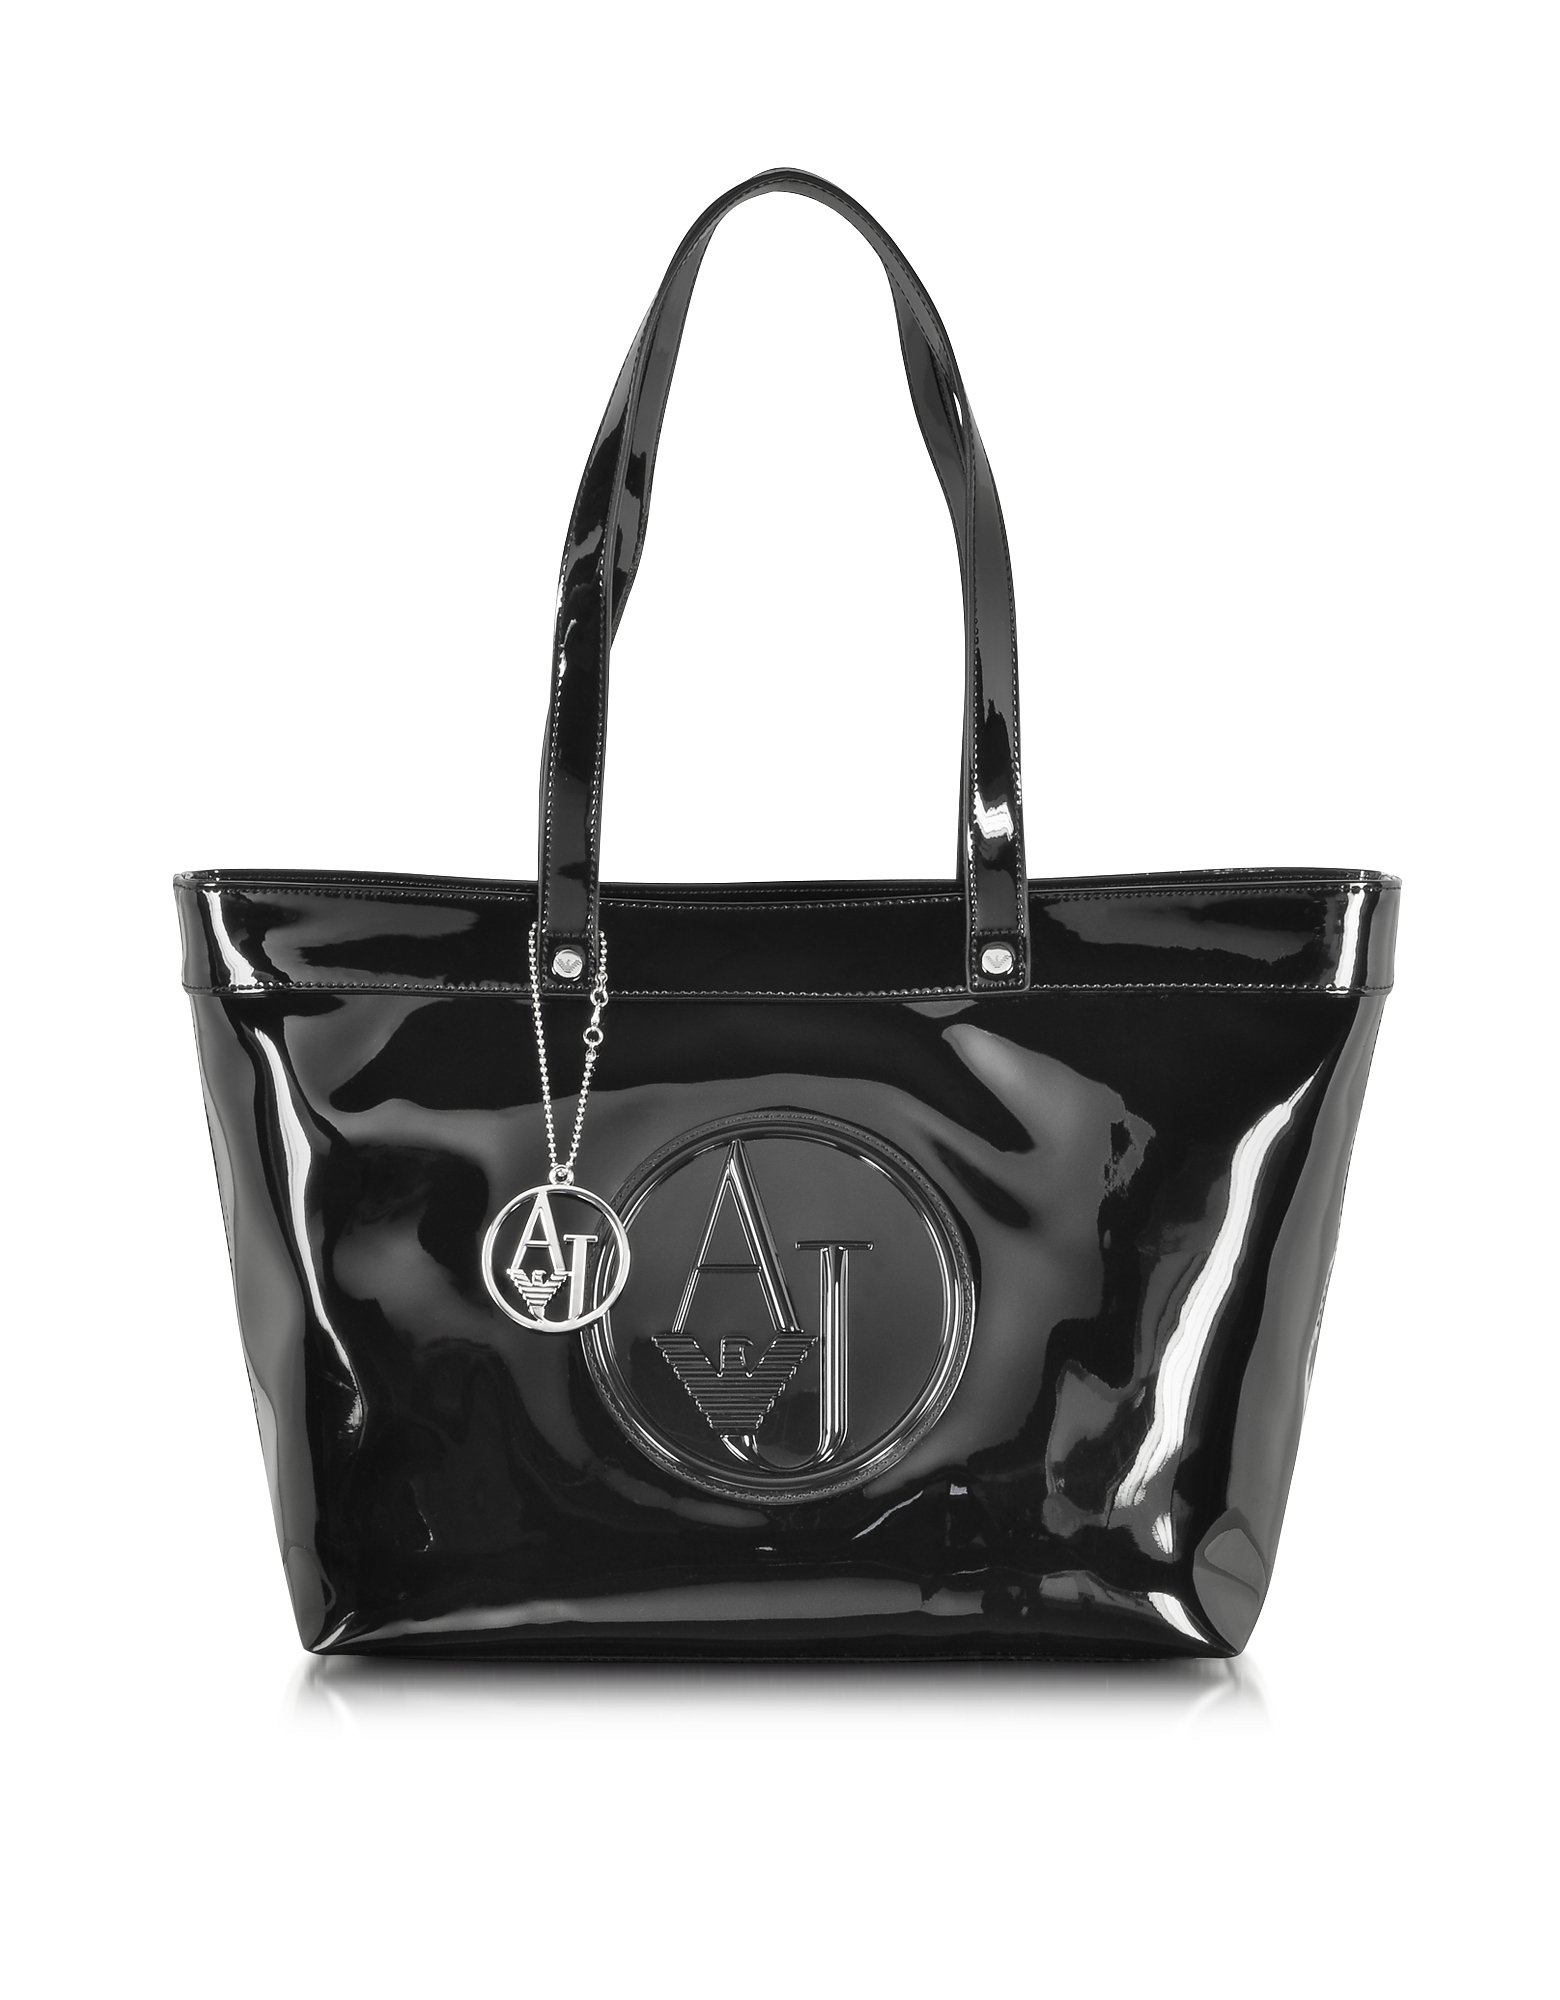 Armani Jeans Designer Handbags, Black Eco Patent Leather Large Tote Bag